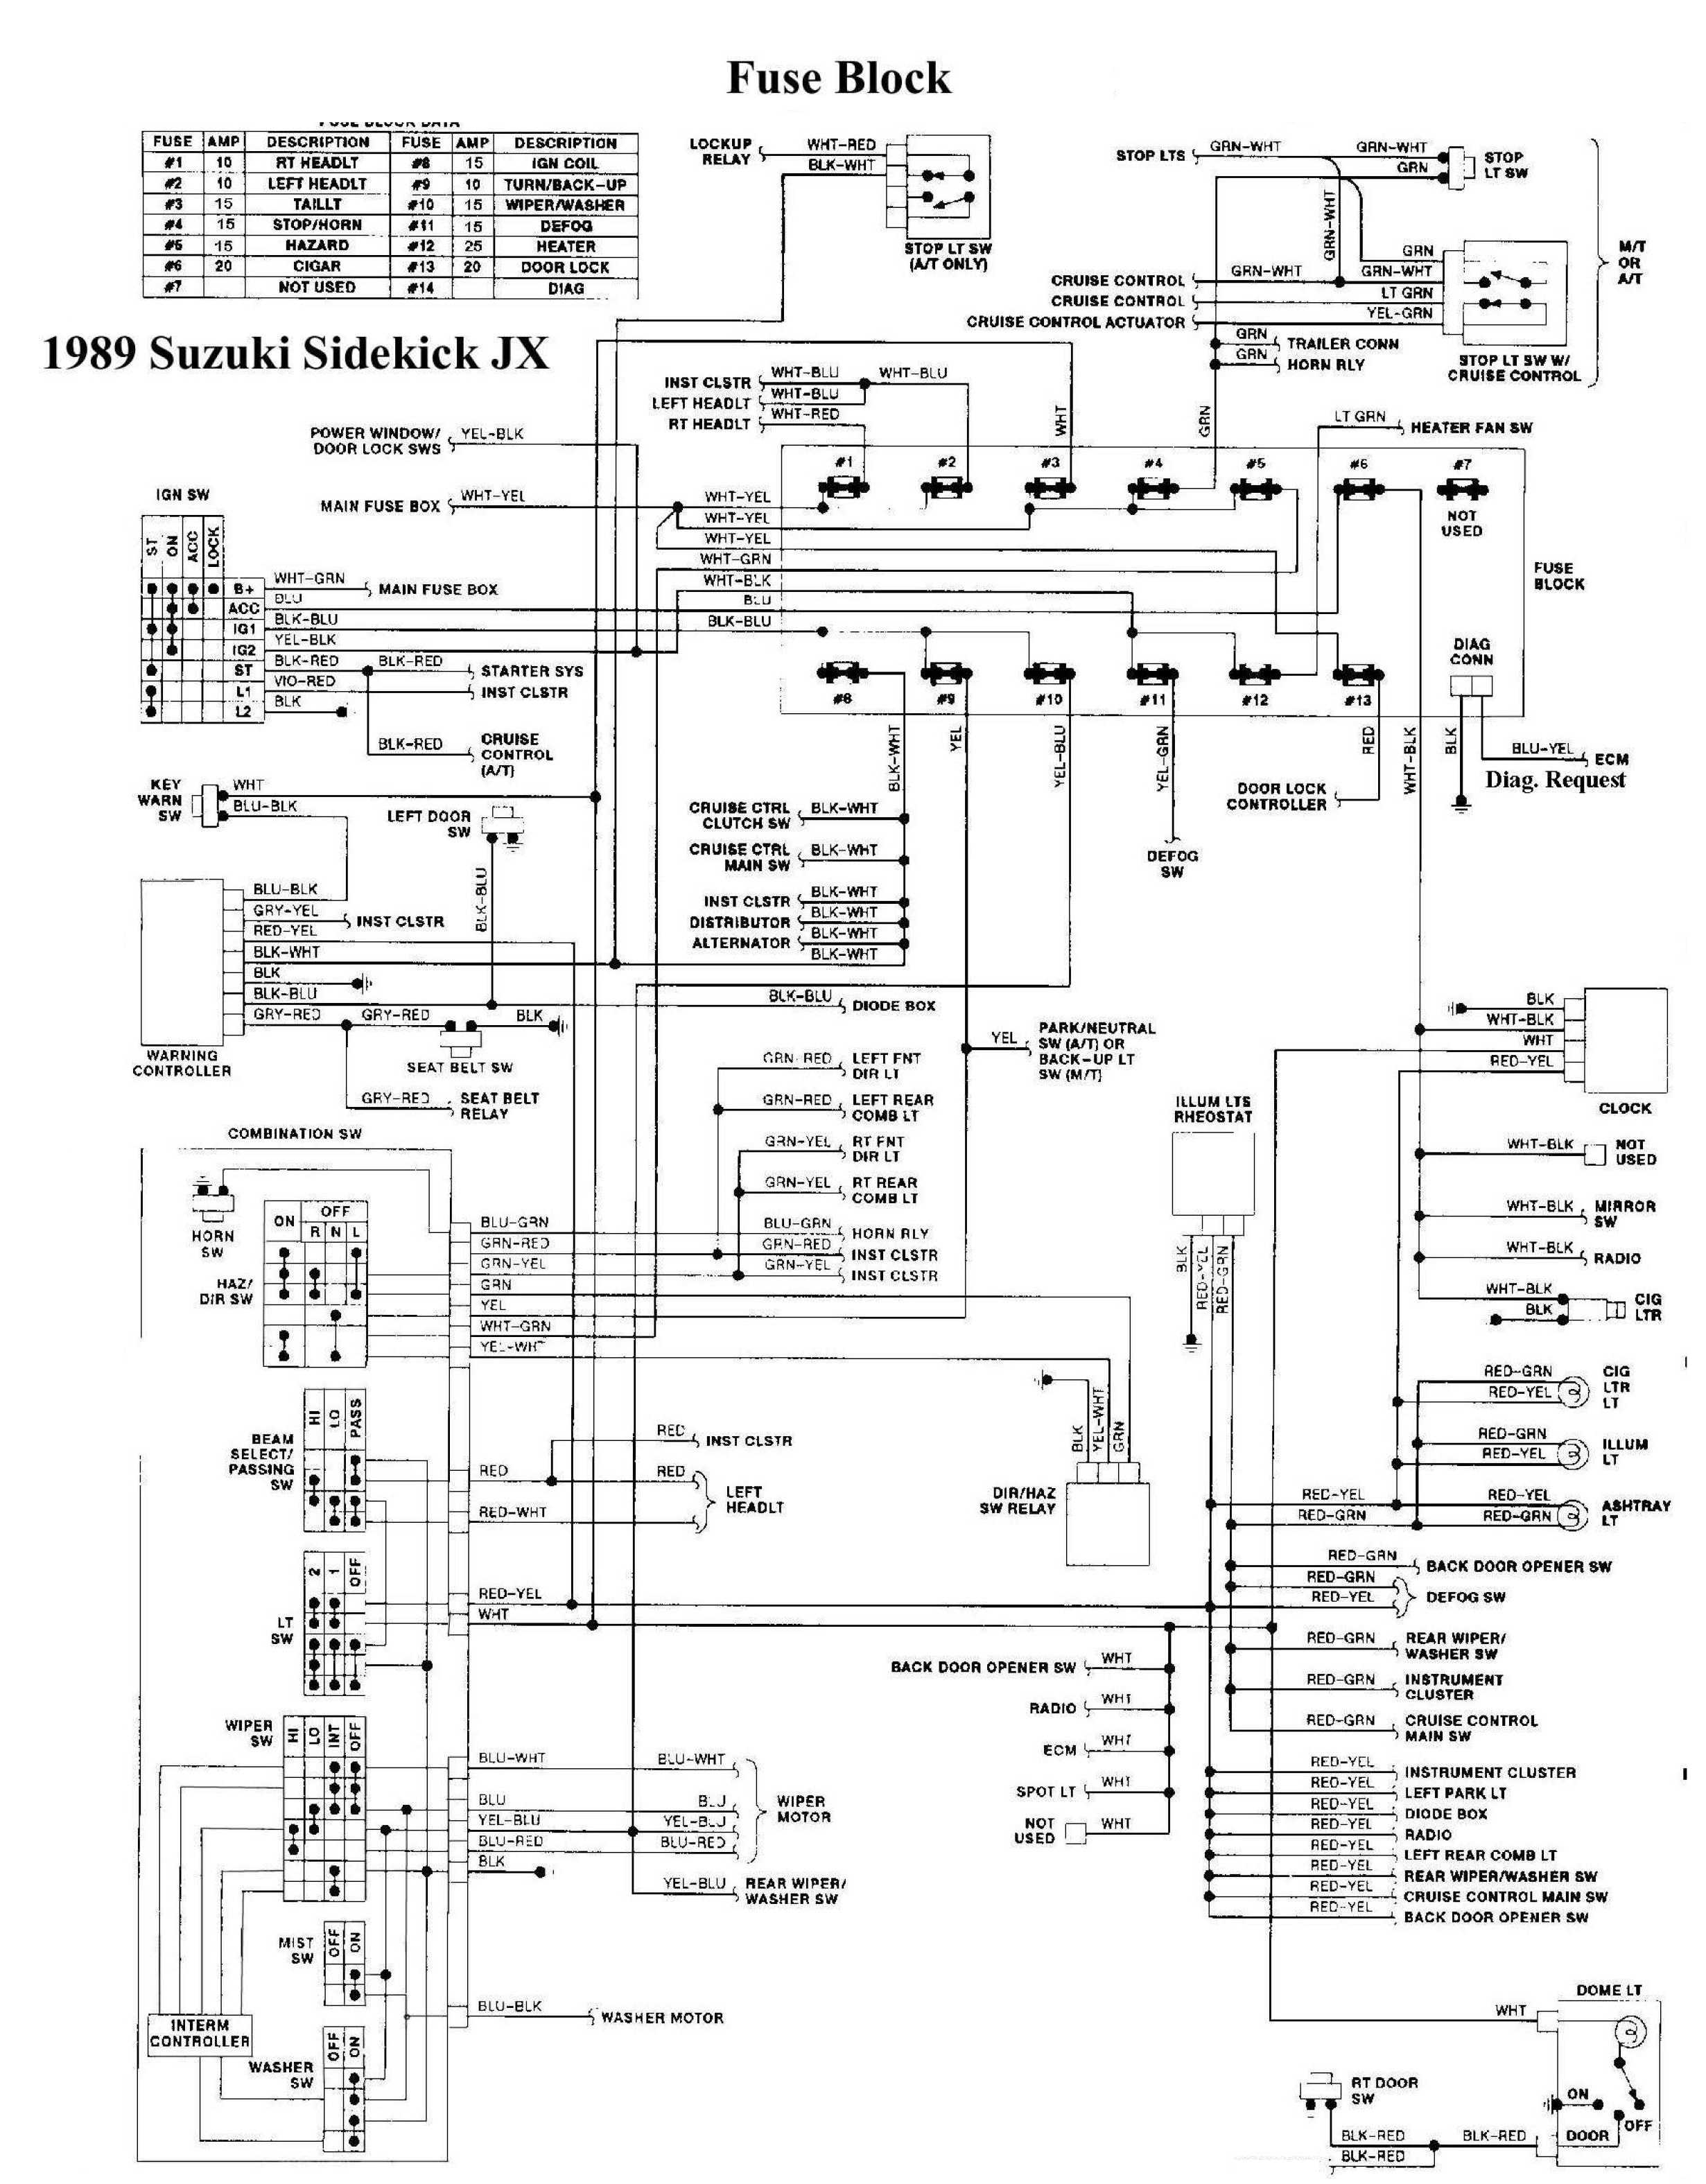 1998 Suzuki Esteem Fuse Box Diagram Wiring Diagram Multimedia Multimedia Wallabyviaggi It